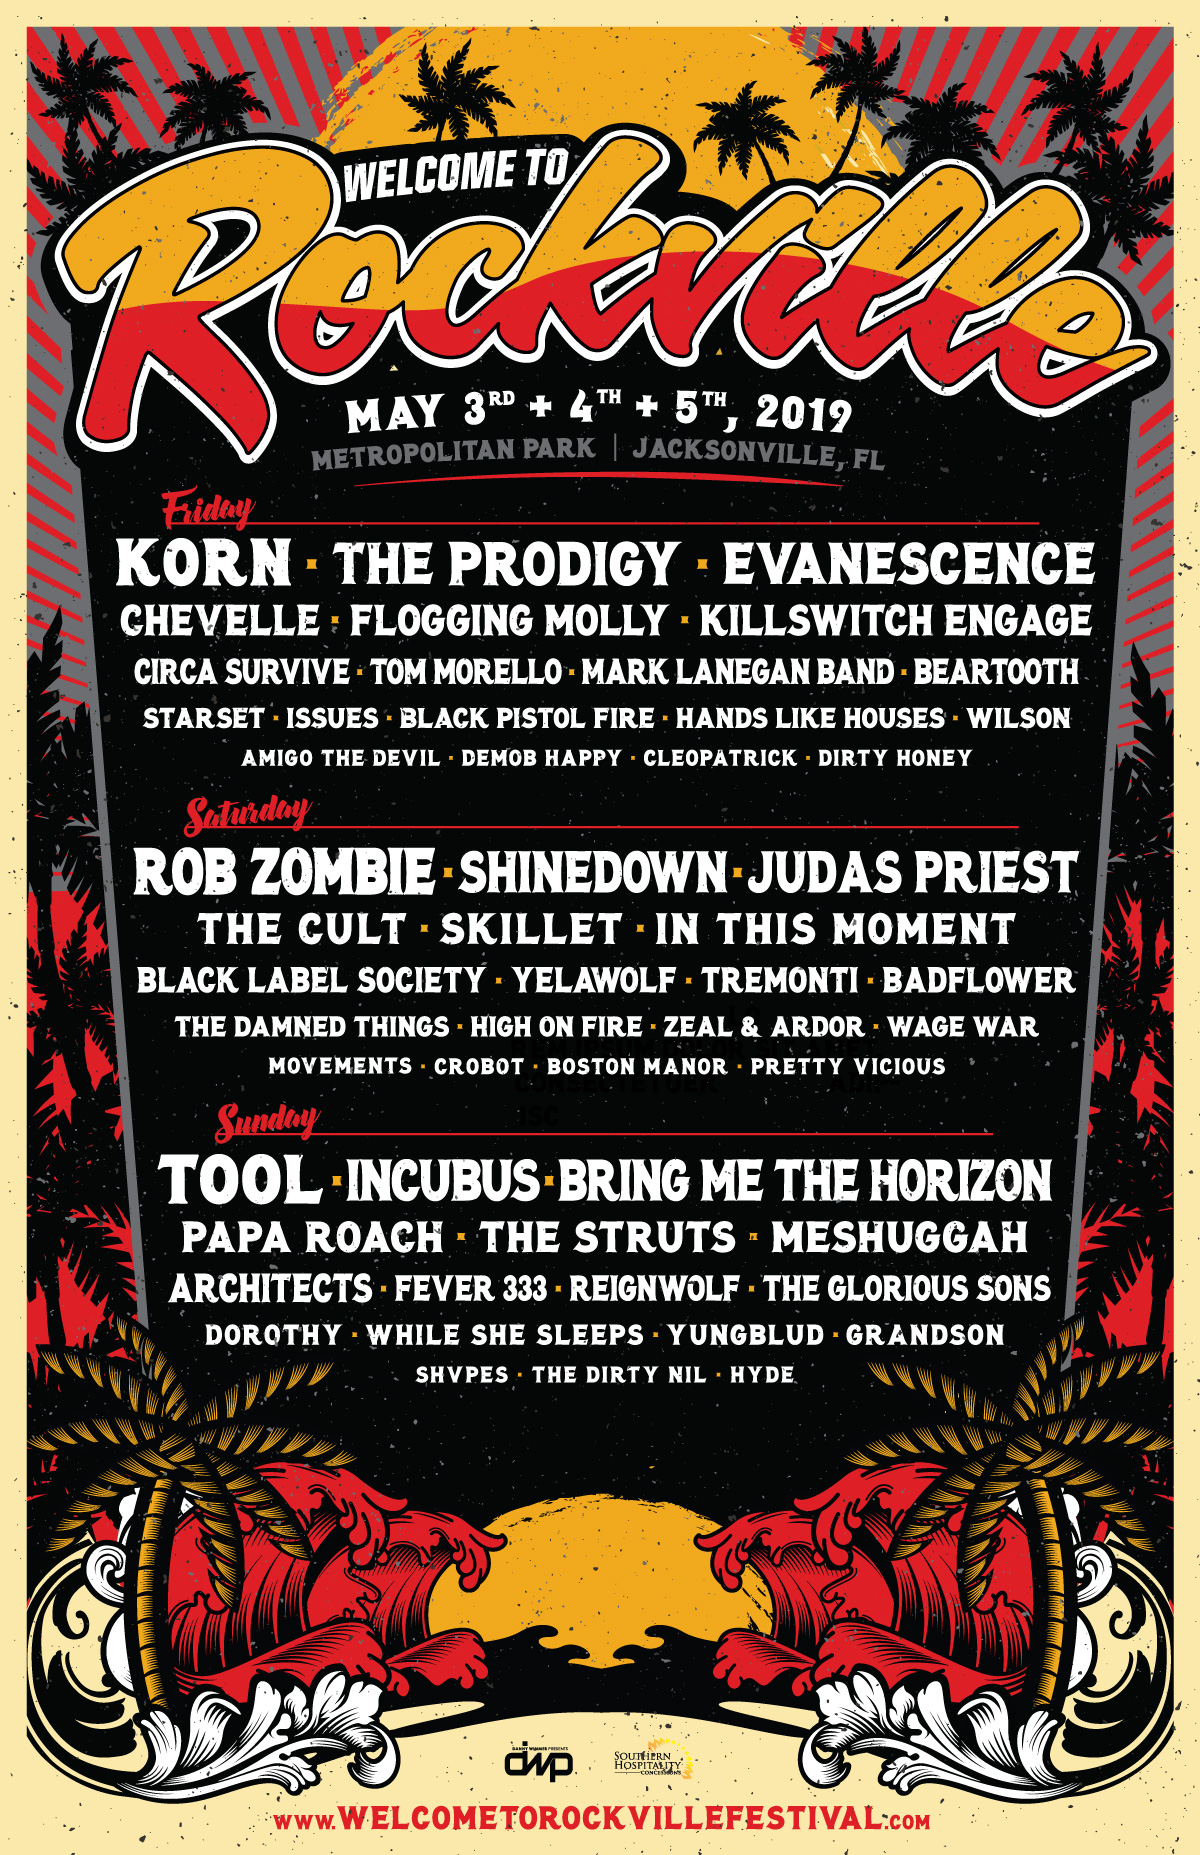 Welcome to Rockville 2019 Poster